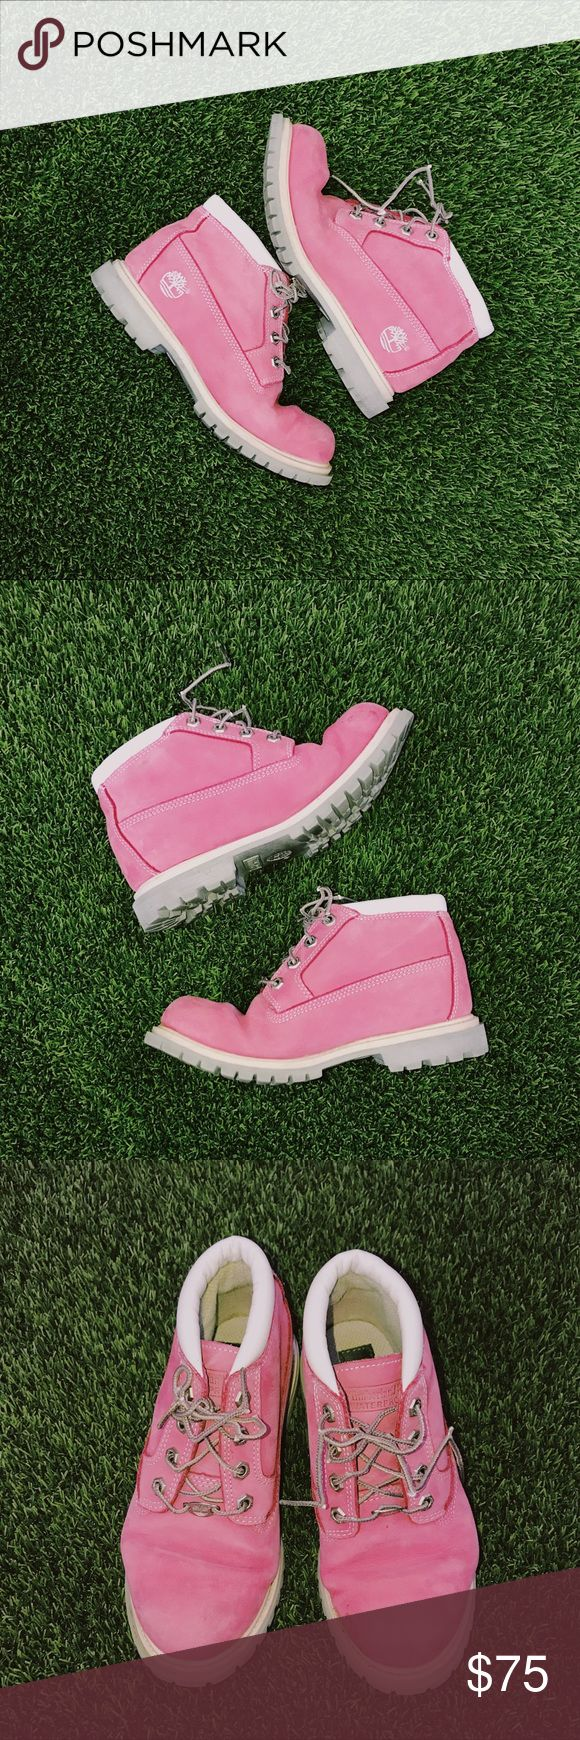 Pink Timberlands - Waterproof Pink Timberland Nellie Waterproof Chukka Boots 💓 Worn less than a handful of times, gently used, see photos for wear.  These comfy Nellie boots are the perfect blend of rugged and feminine. Looks great styled with everything from skirts to ripped jeans. This pair of boots retails for $130 right now on the Timberland website. Tag Size: 7M 🌸🌷OPEN TO OFFERS🌷🌸 Timberland Shoes Lace Up Boots